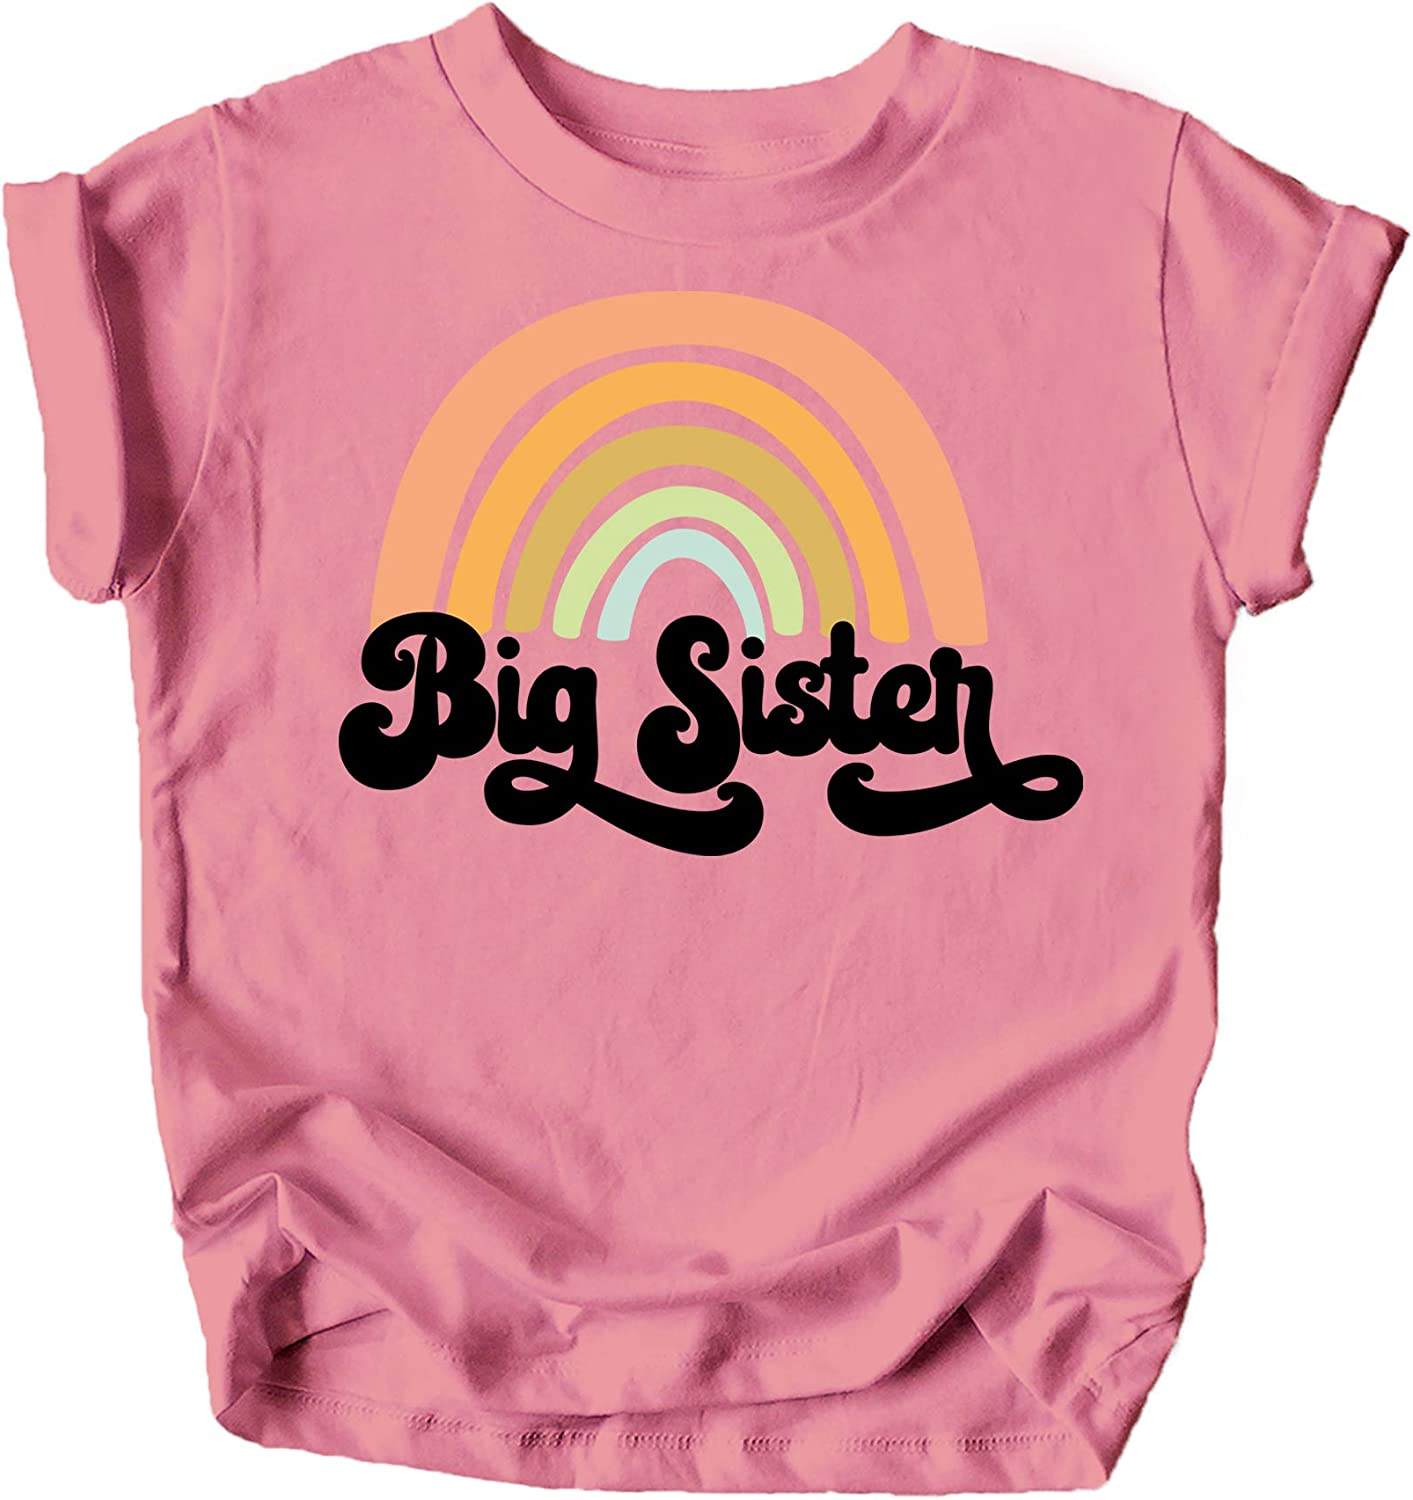 Retro Rainbow Big Sister Sibling Reveal Announcement Shirt for Baby and Toddler Girls Sibling Outfits